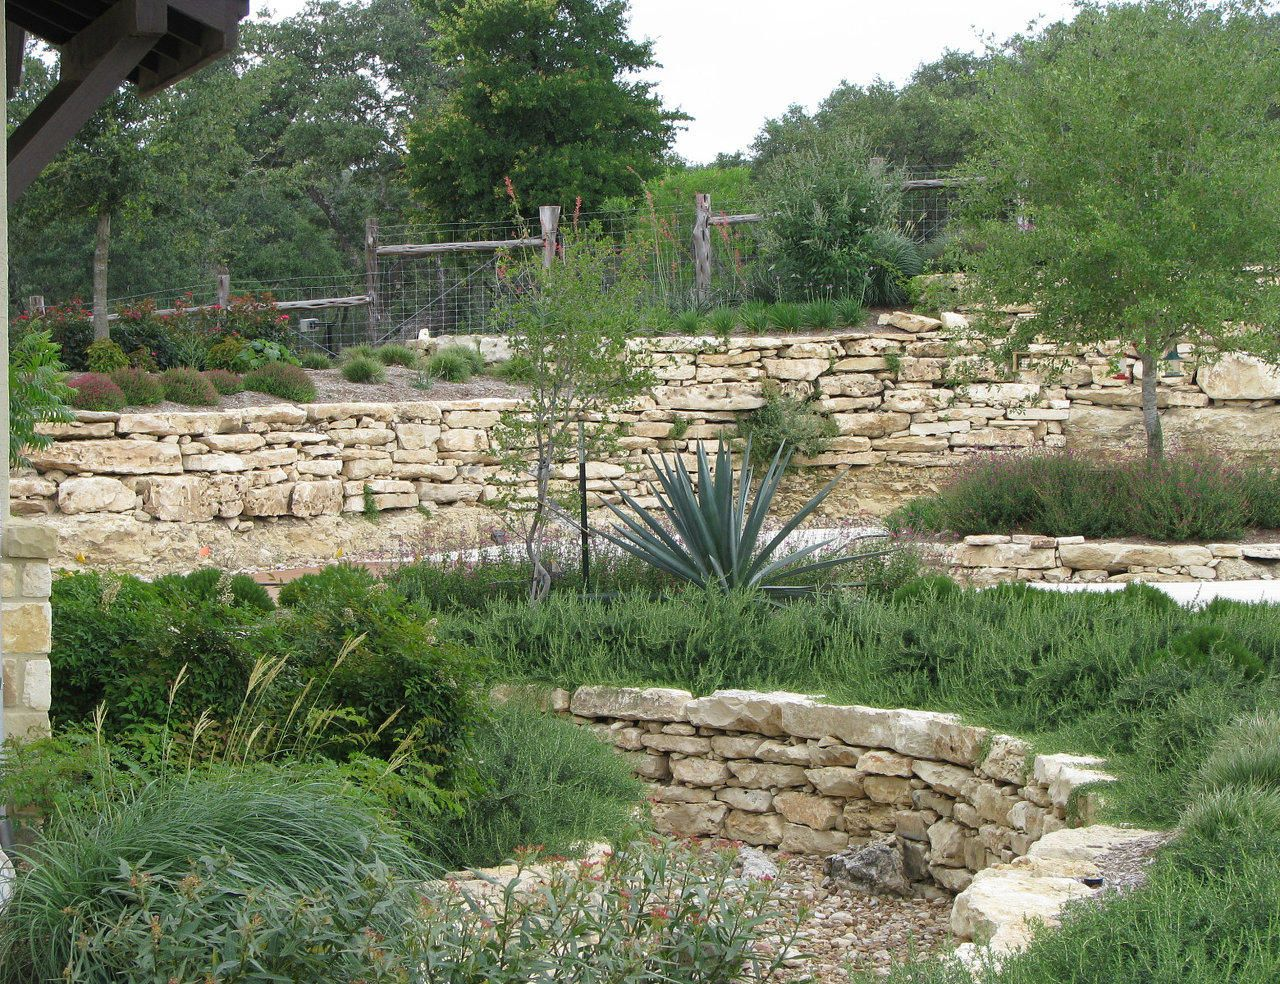 Texas Hill Country Xeriscaping | GROWS landscaping company San Antonio,  Texas. - Texas Hill Country Xeriscaping GROWS Landscaping Company San